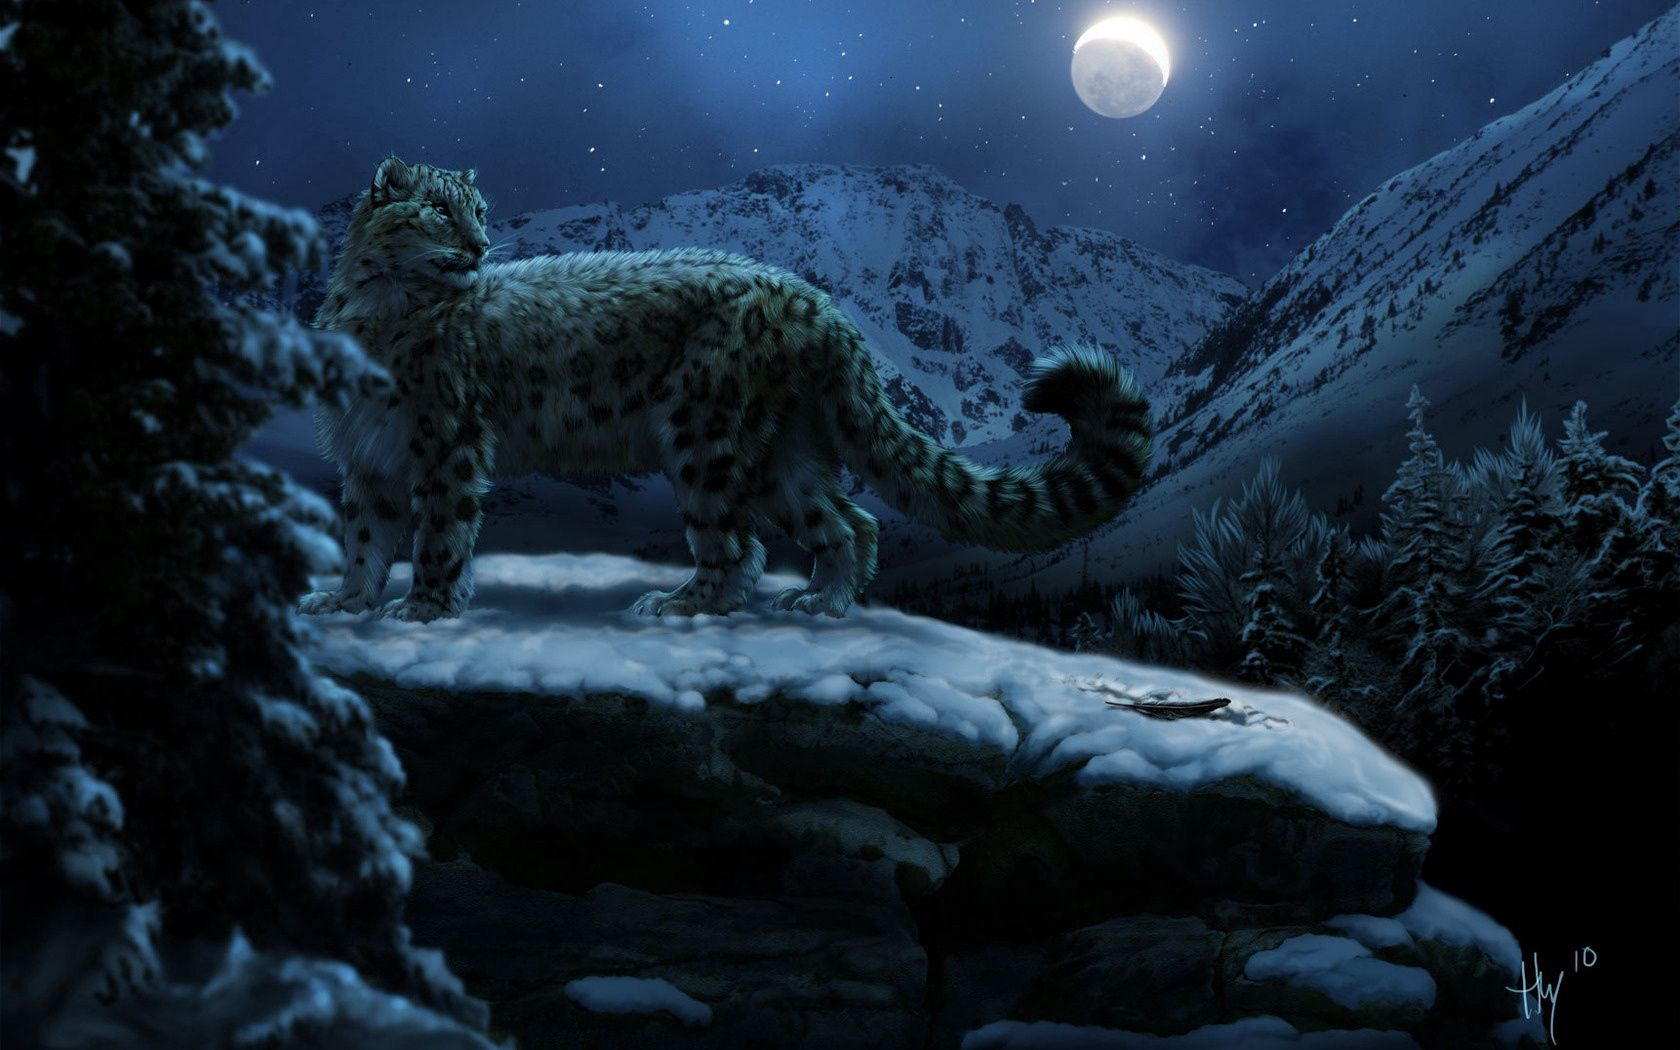 95755 download wallpaper Animals, Moon, Winter, Snow Leopard screensavers and pictures for free